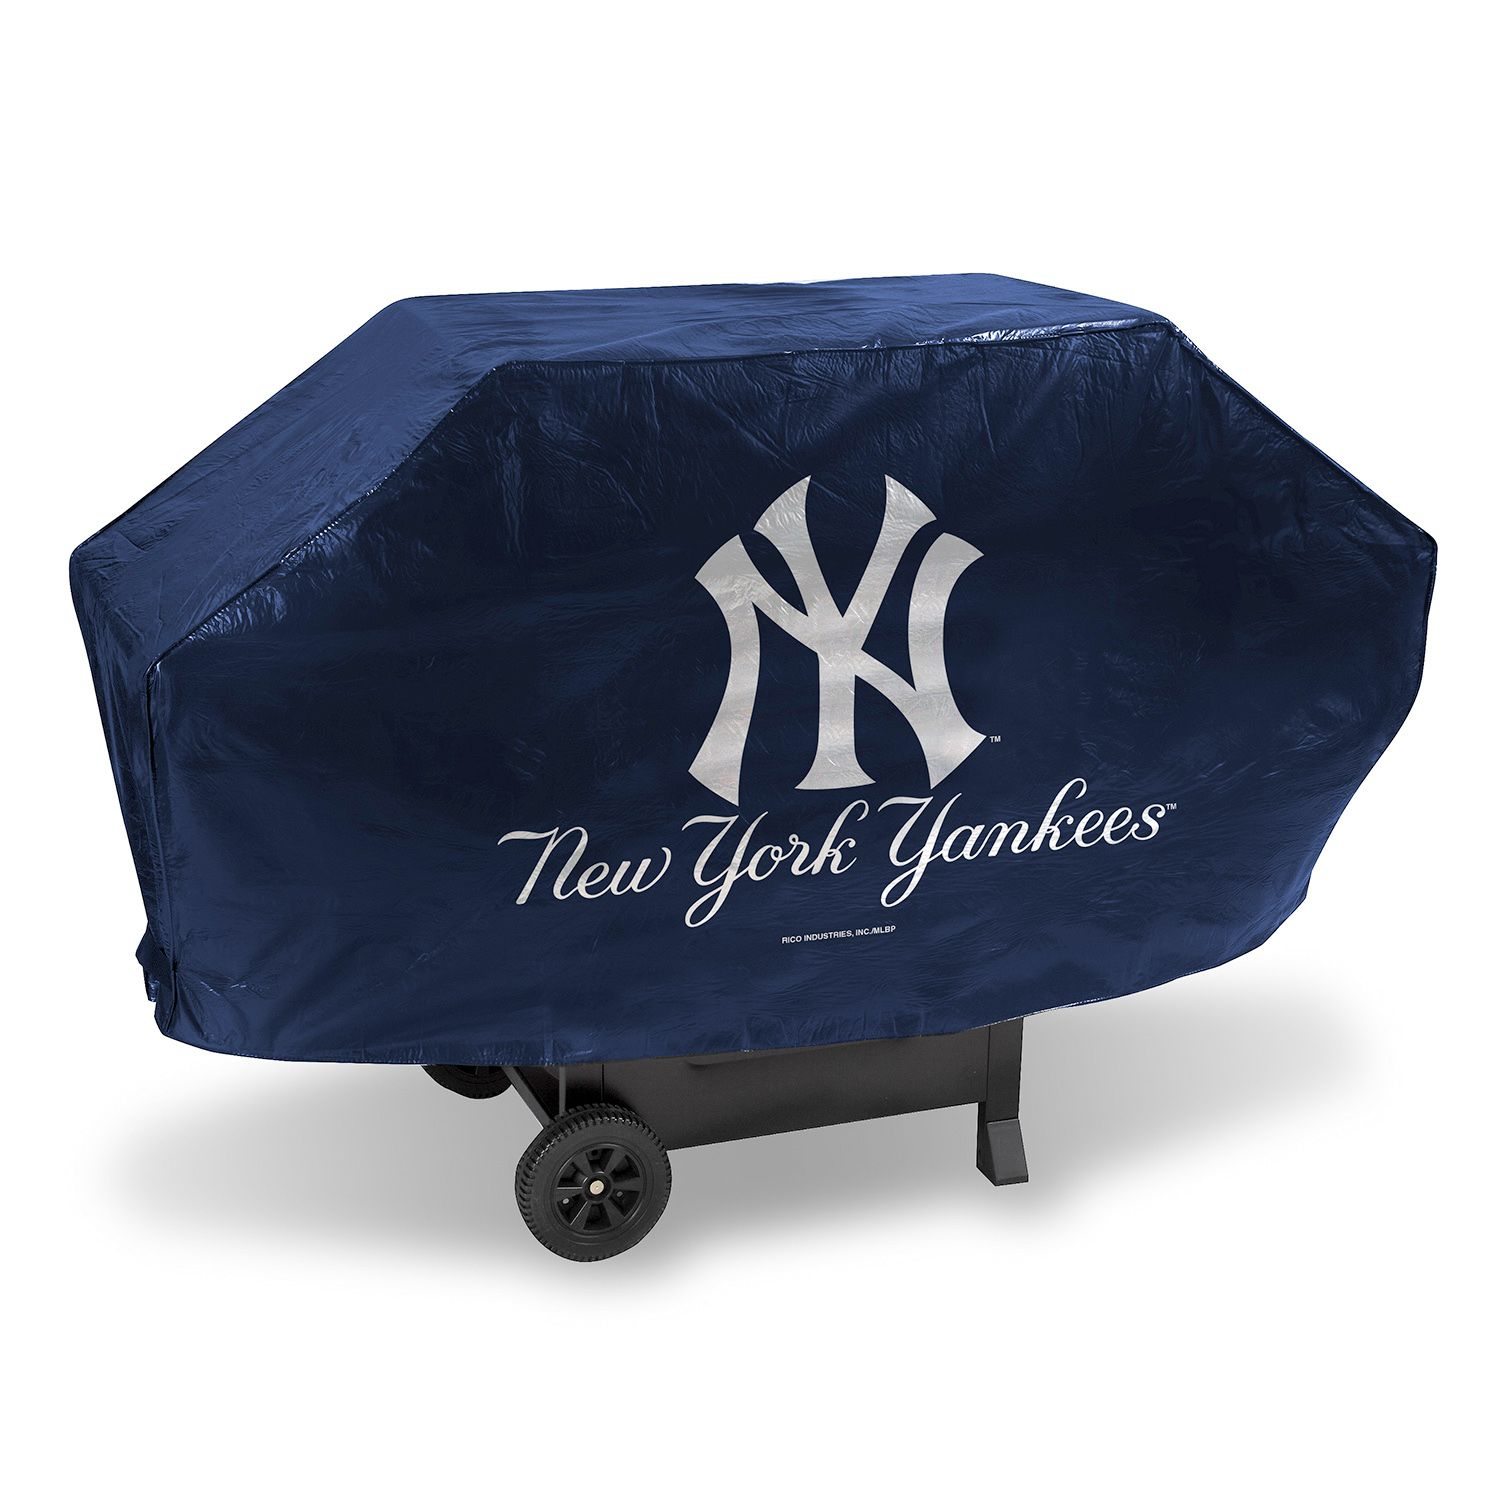 New York Yankees Deluxe Grill Cover  sc 1 st  Kohlu0027s & York Yankees Deluxe Grill Cover islam-shia.org